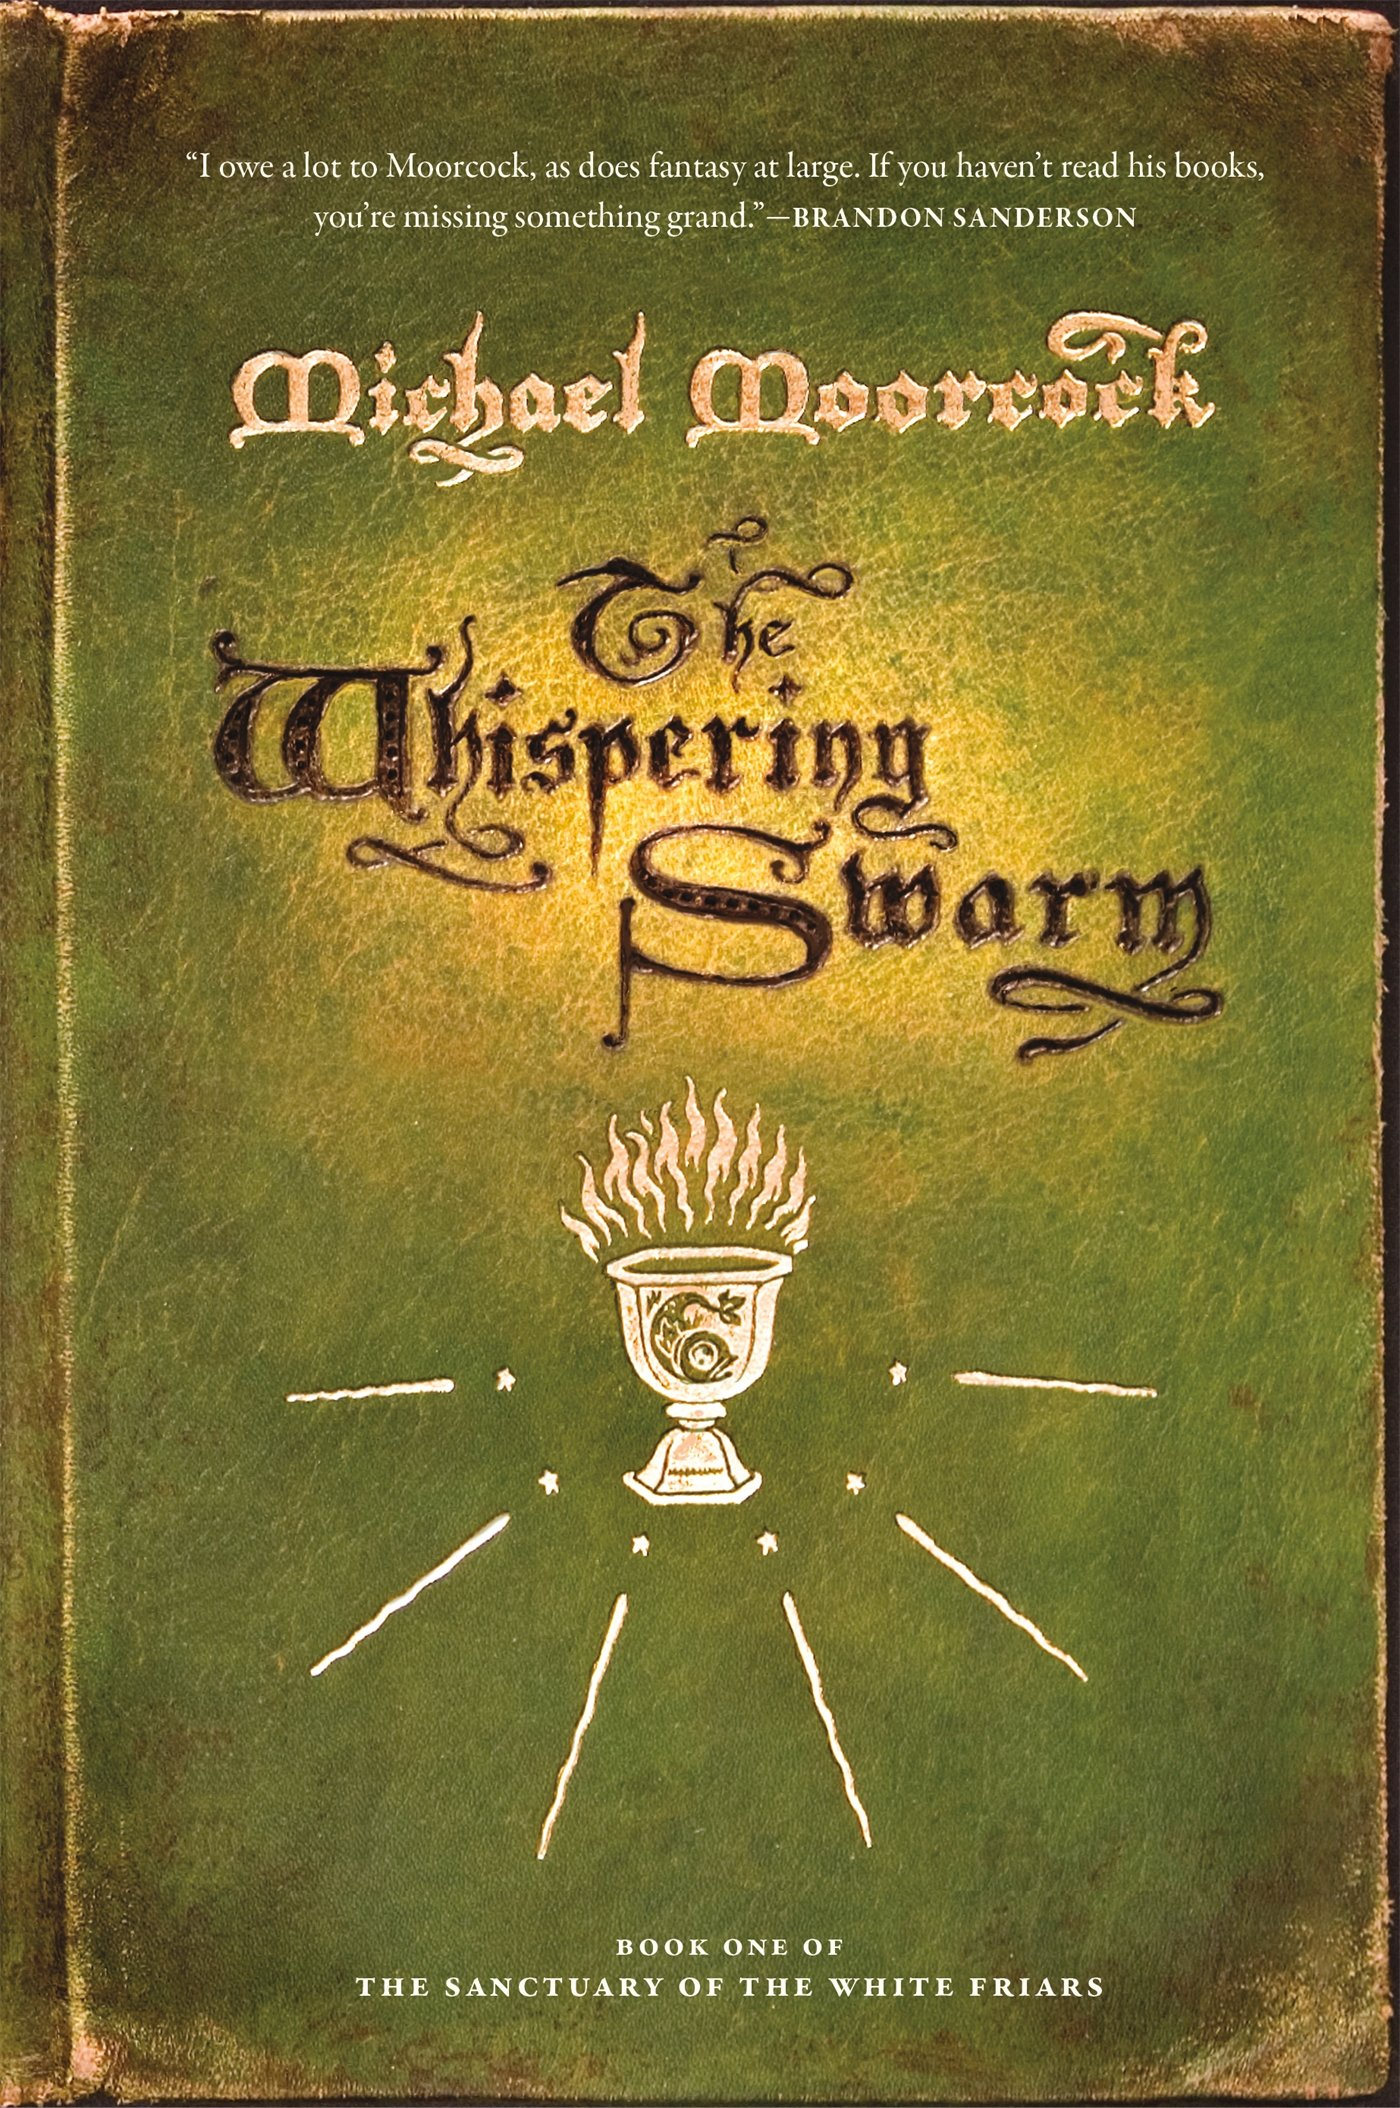 Download The Whispering Swarm: Book One of The Sanctuary of the White Friars pdf epub